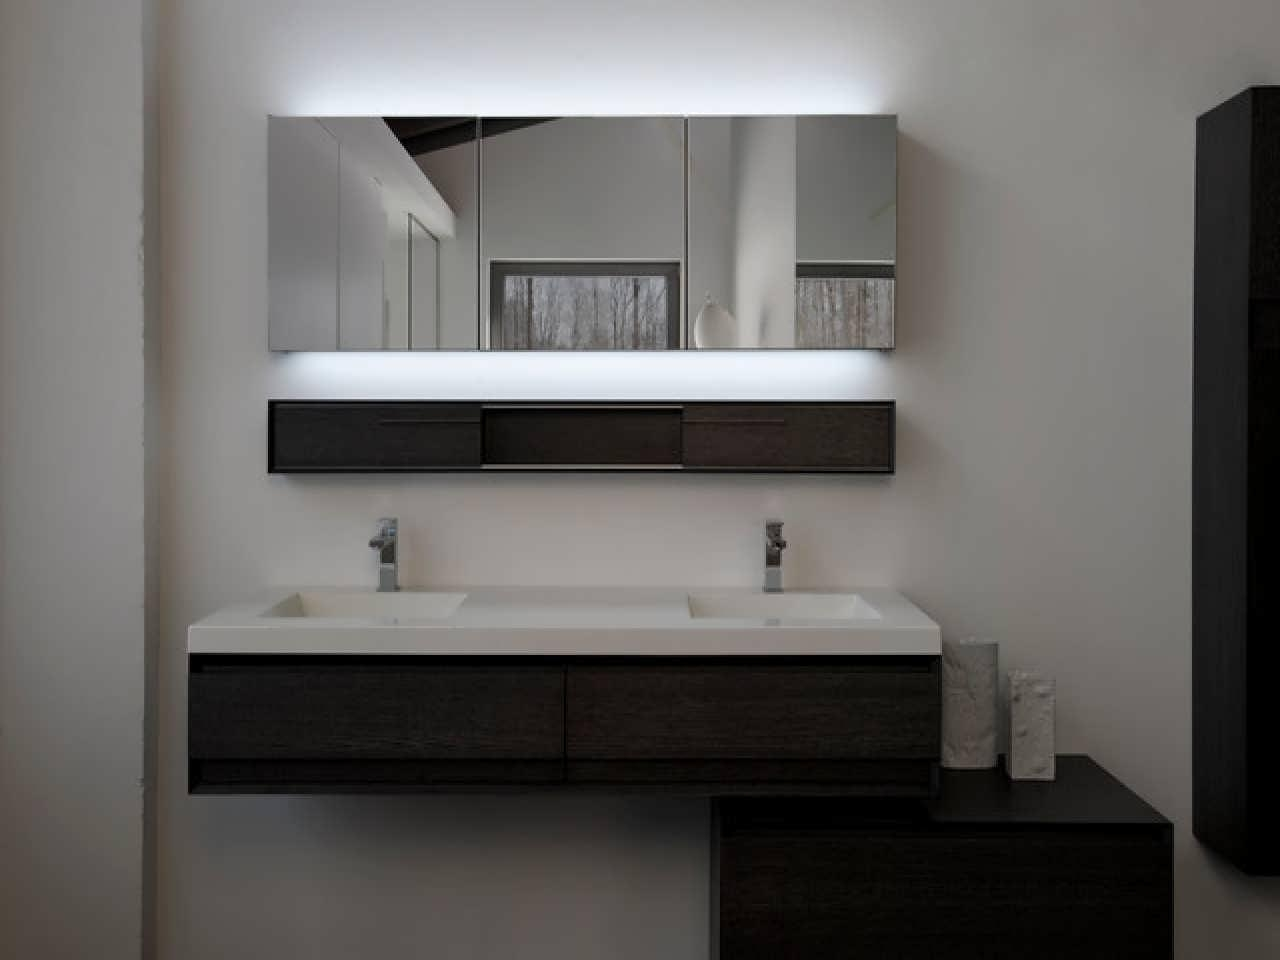 Bathroom Cabinets : Gold Bathroom Mirror Commercial Toilet Mirrors Within Commercial Bathroom Mirrors (Image 7 of 20)